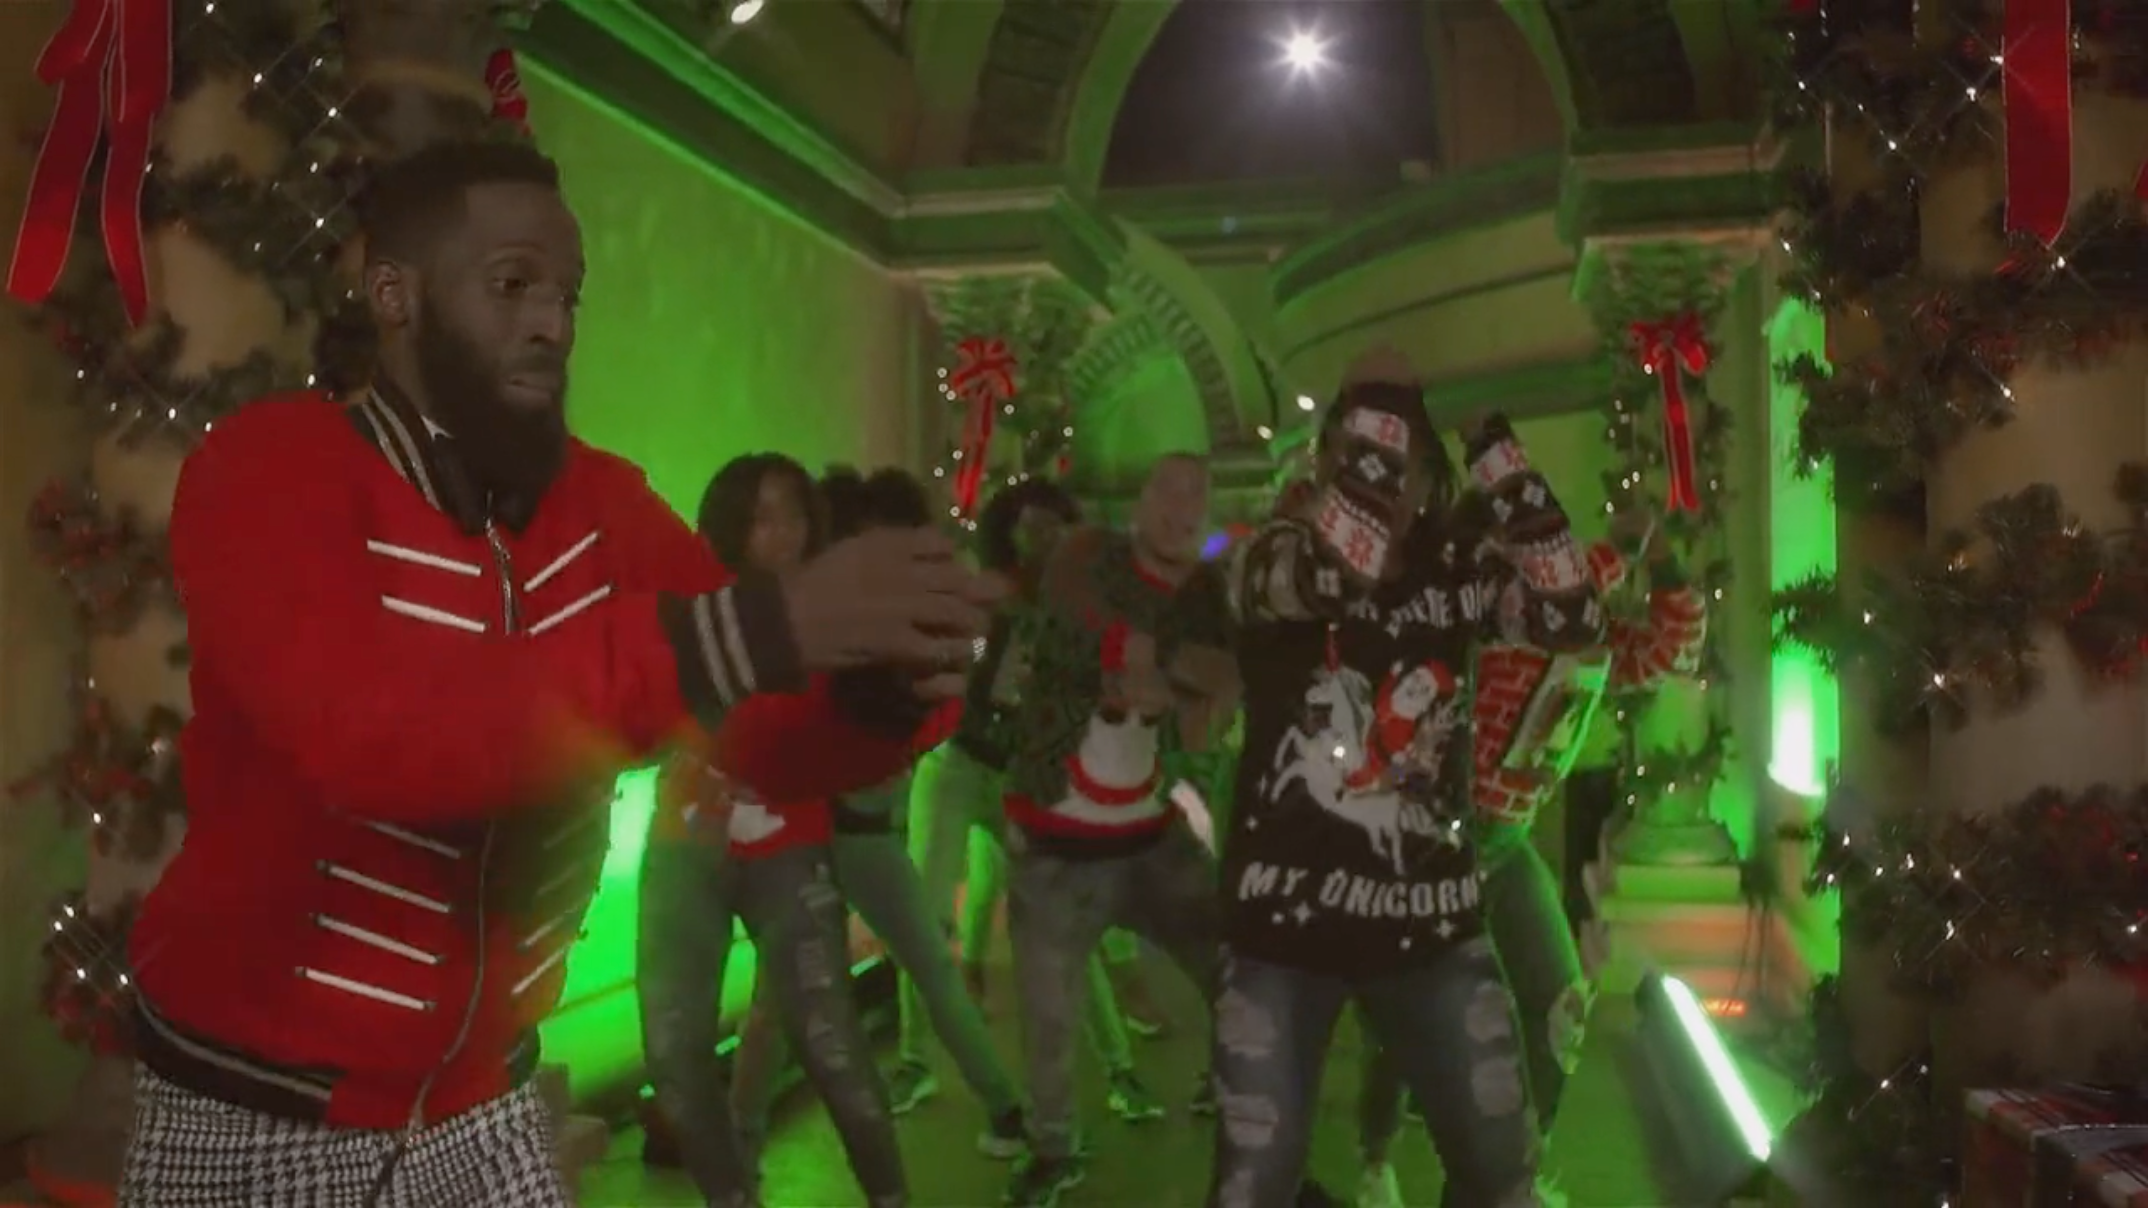 Watch Christmas with Tye Tribbett & Friends - Part 1